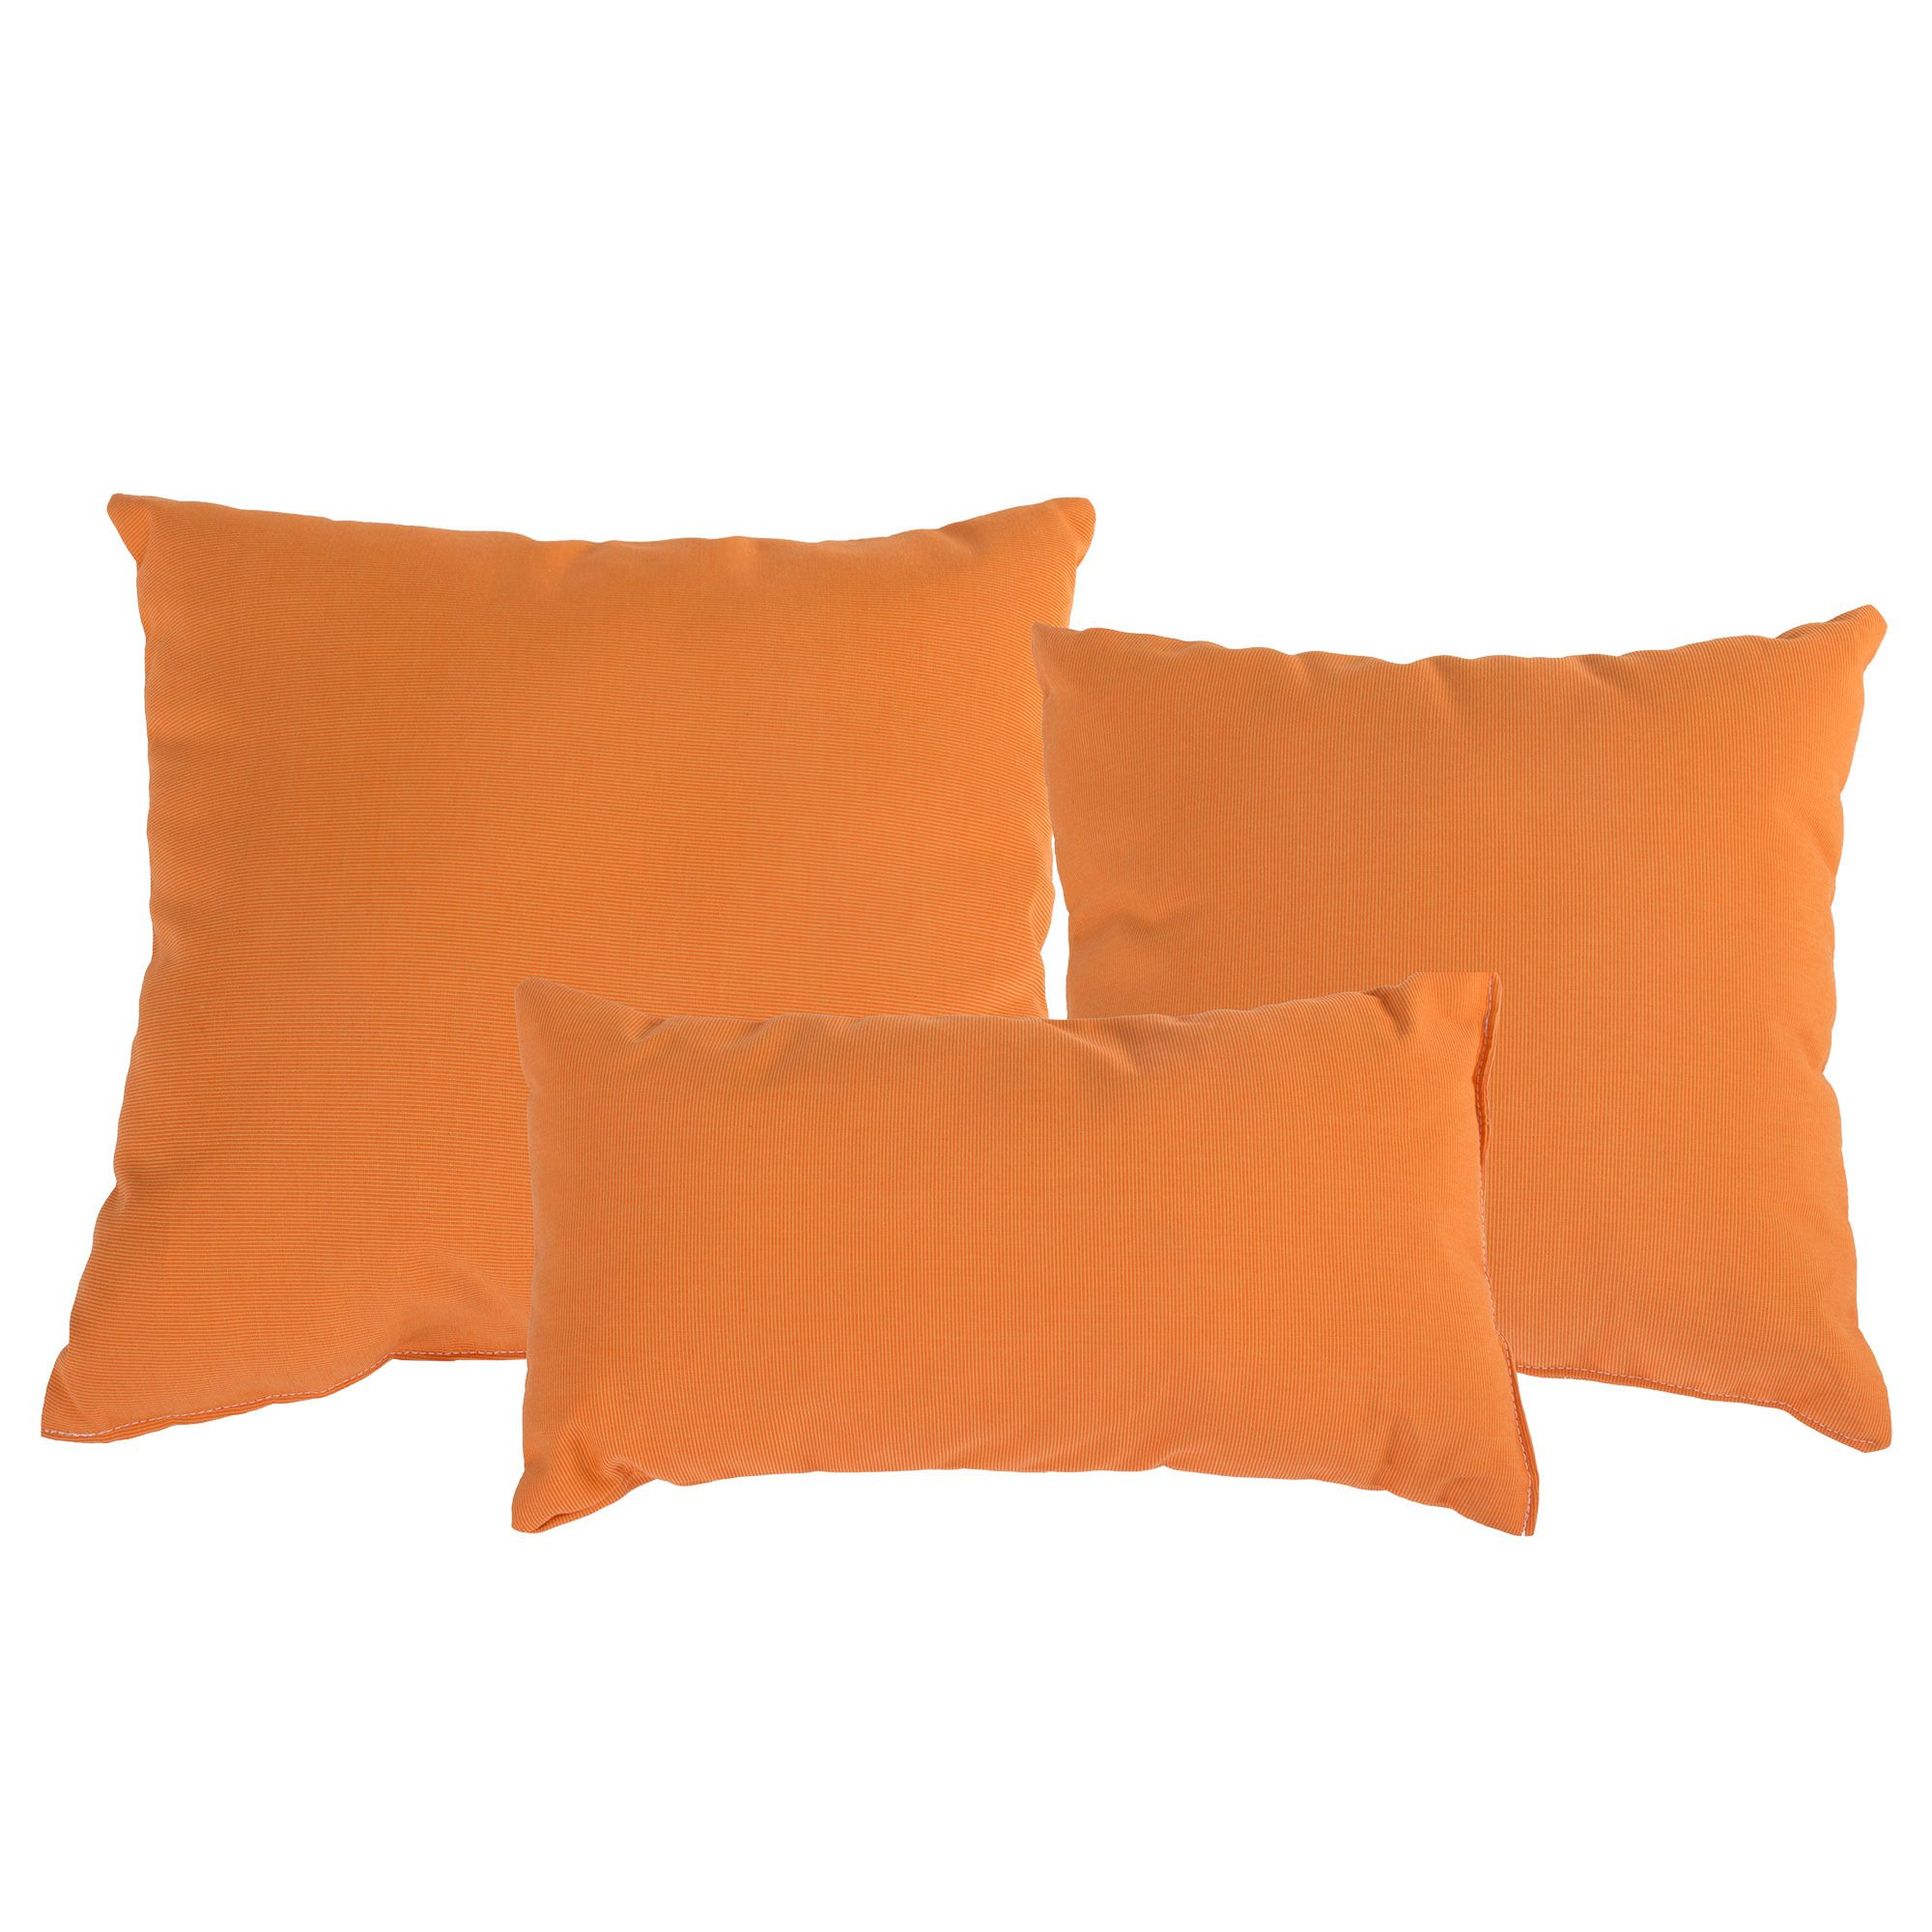 Tangerine Sunbrella Outdoor Throw Pillow DFOHome